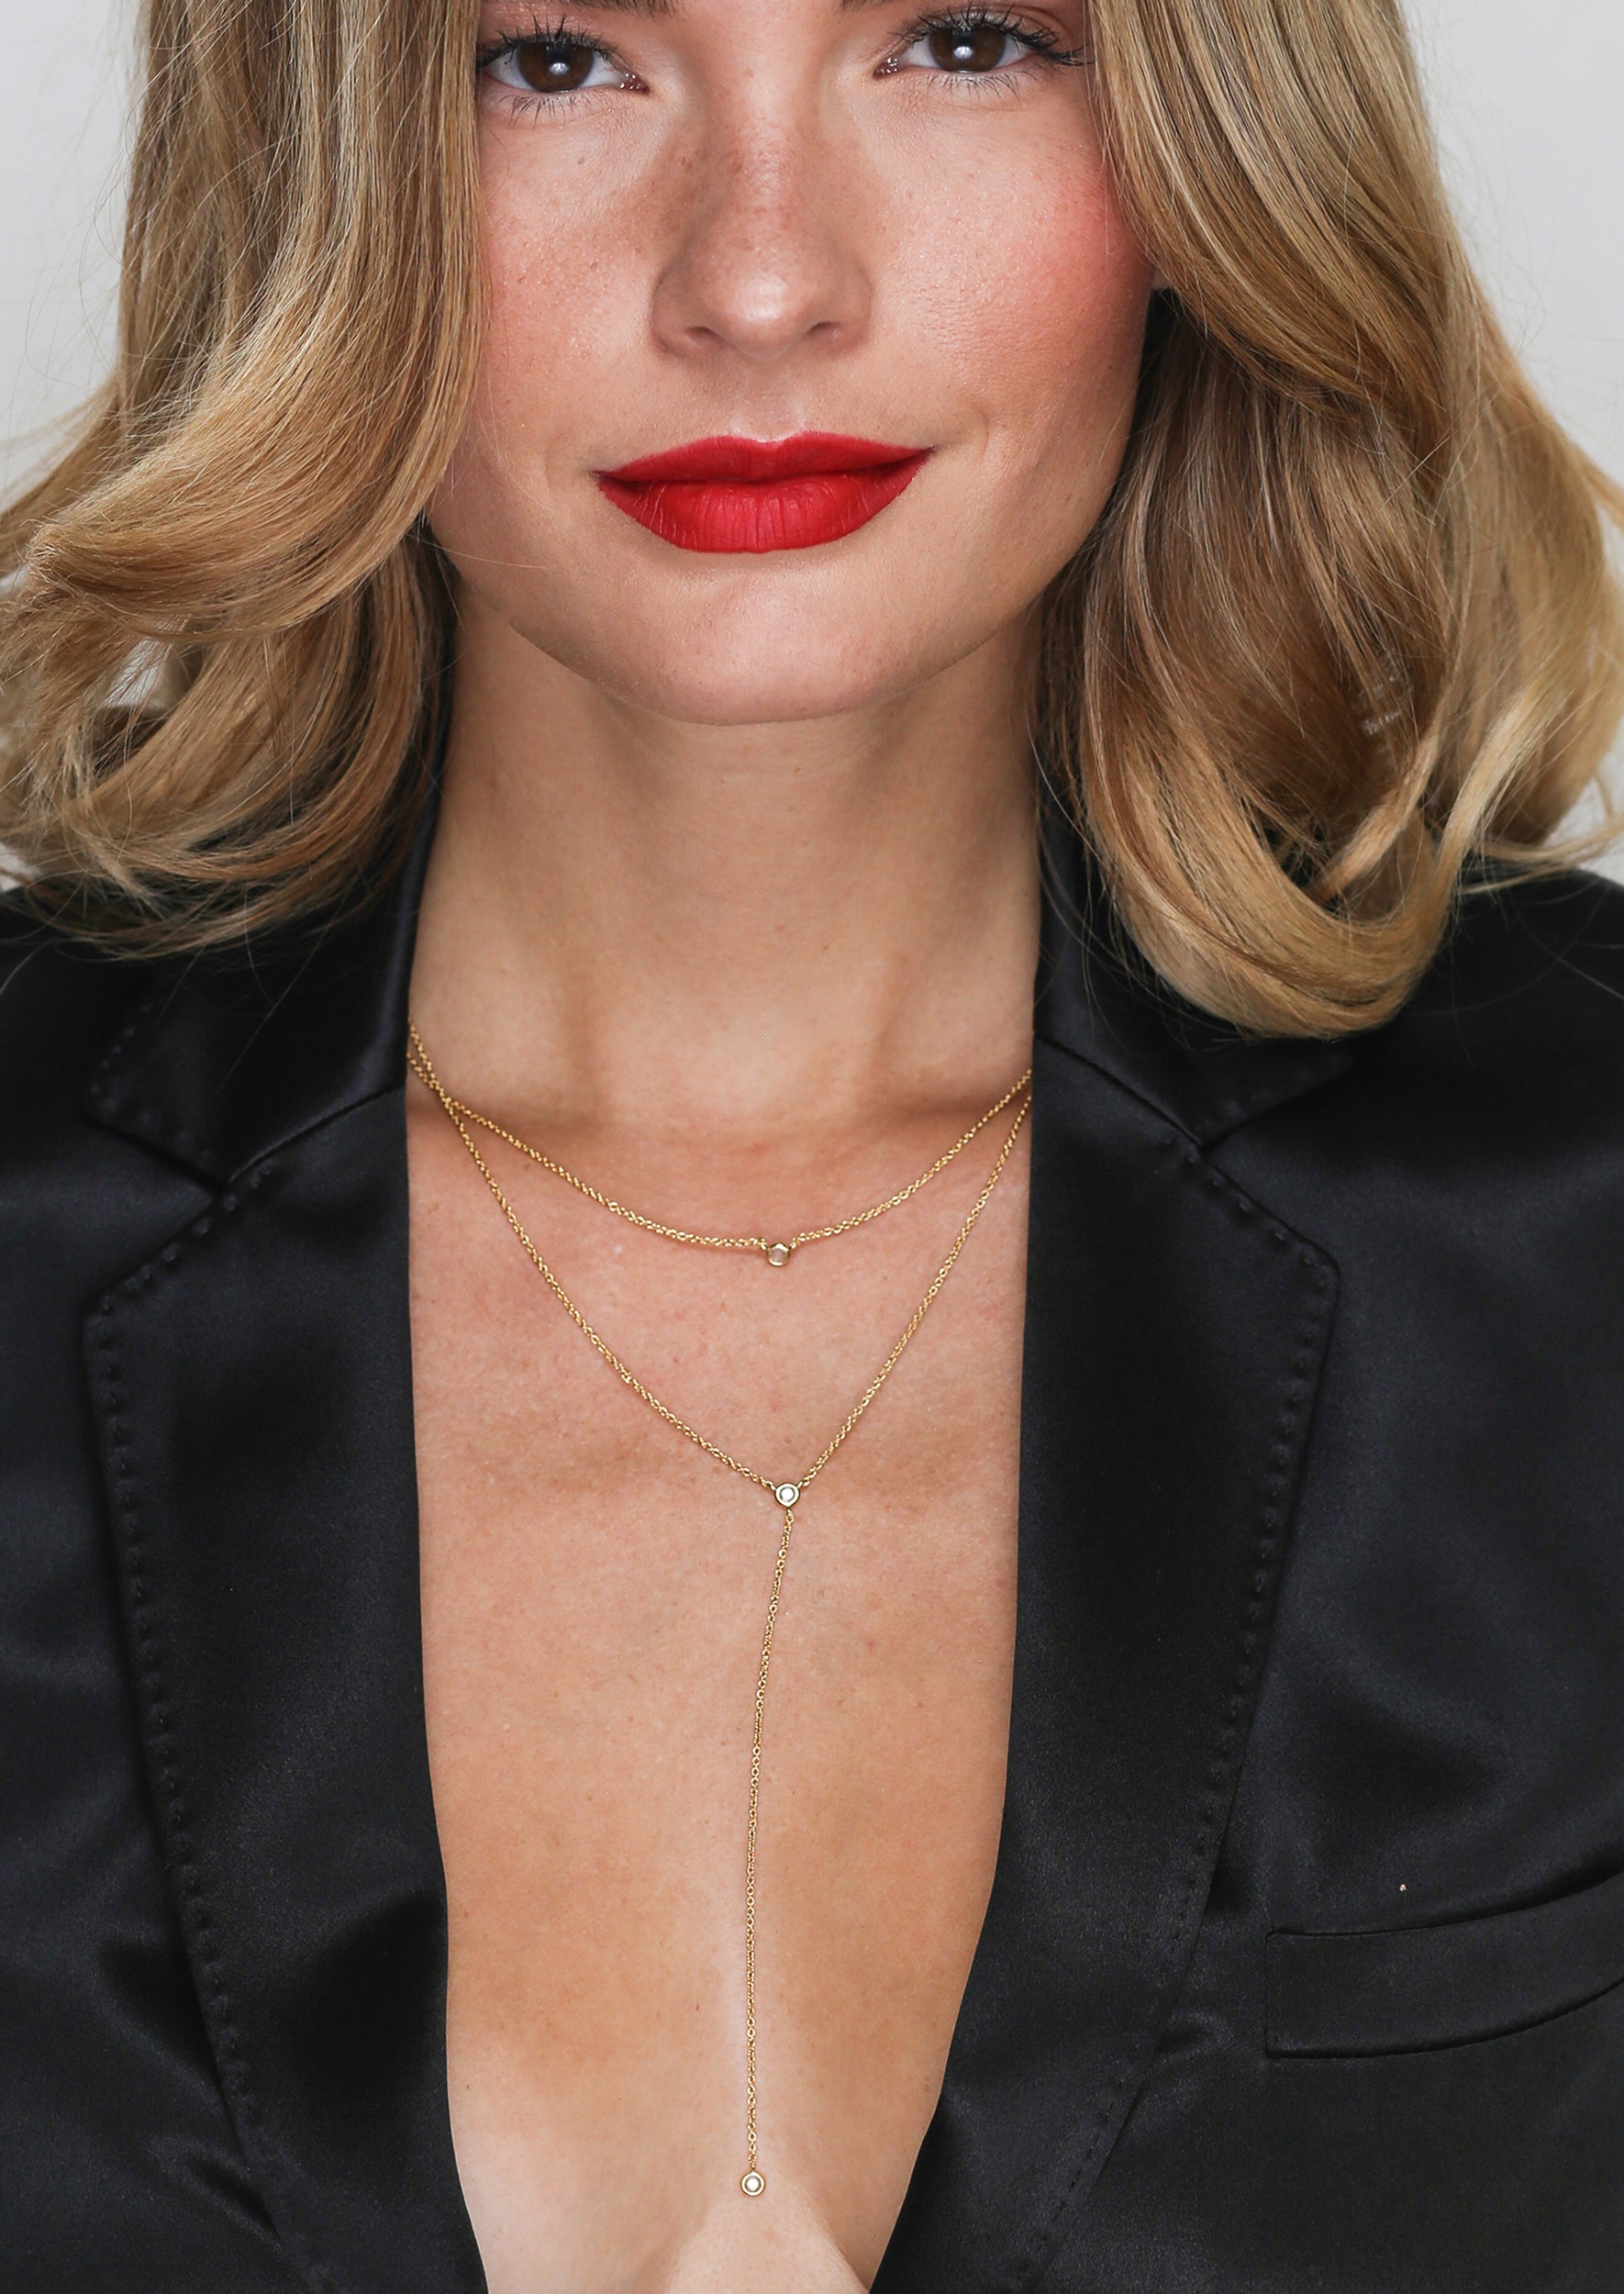 Double Layer Drop Necklace - Jules Smith - 14K Gold Plated - Boho Jewelry